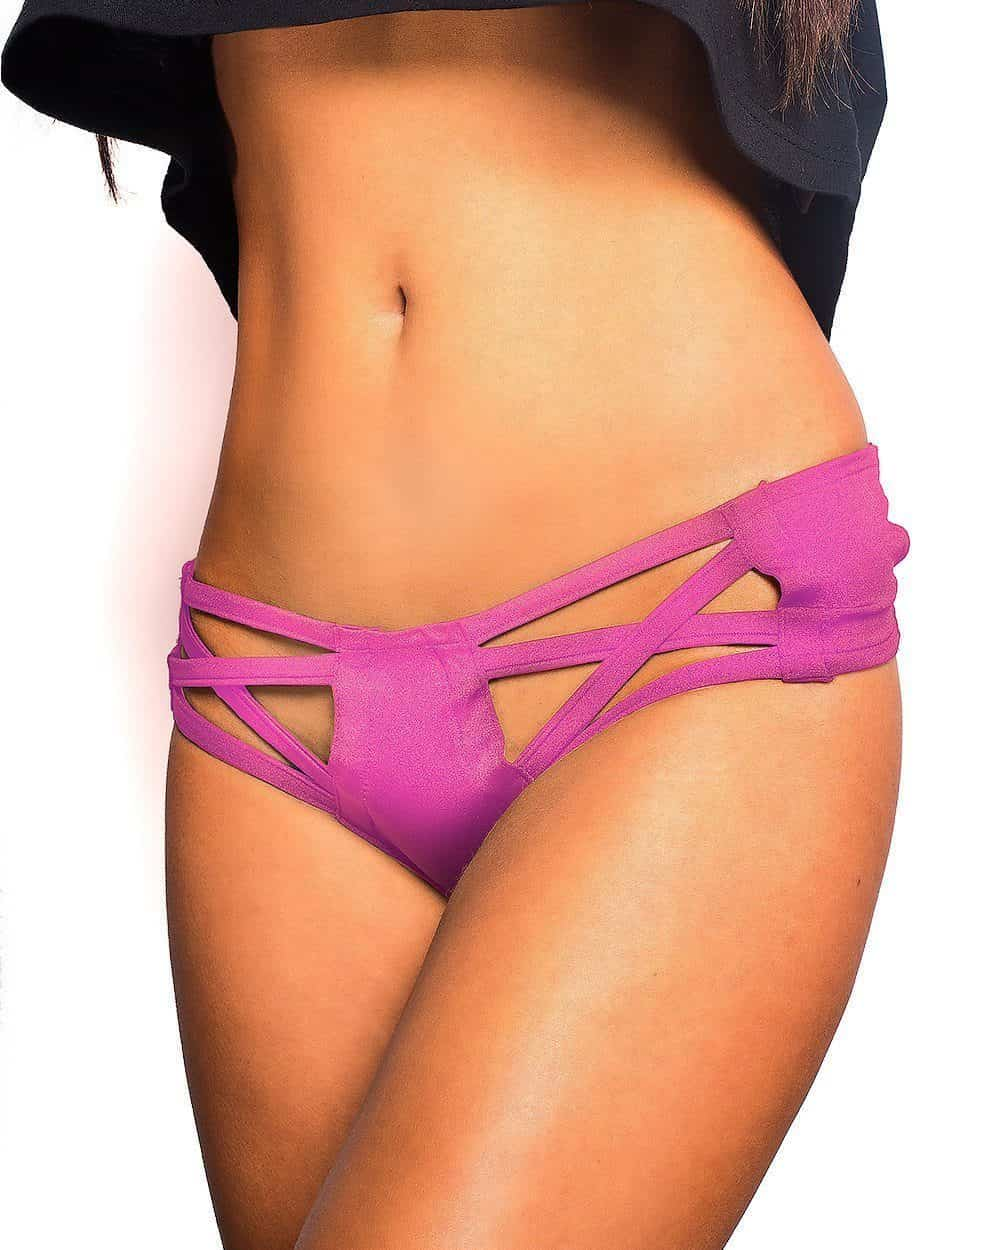 Excision X Cross Cut Out Booty Shorts - Neon Pink